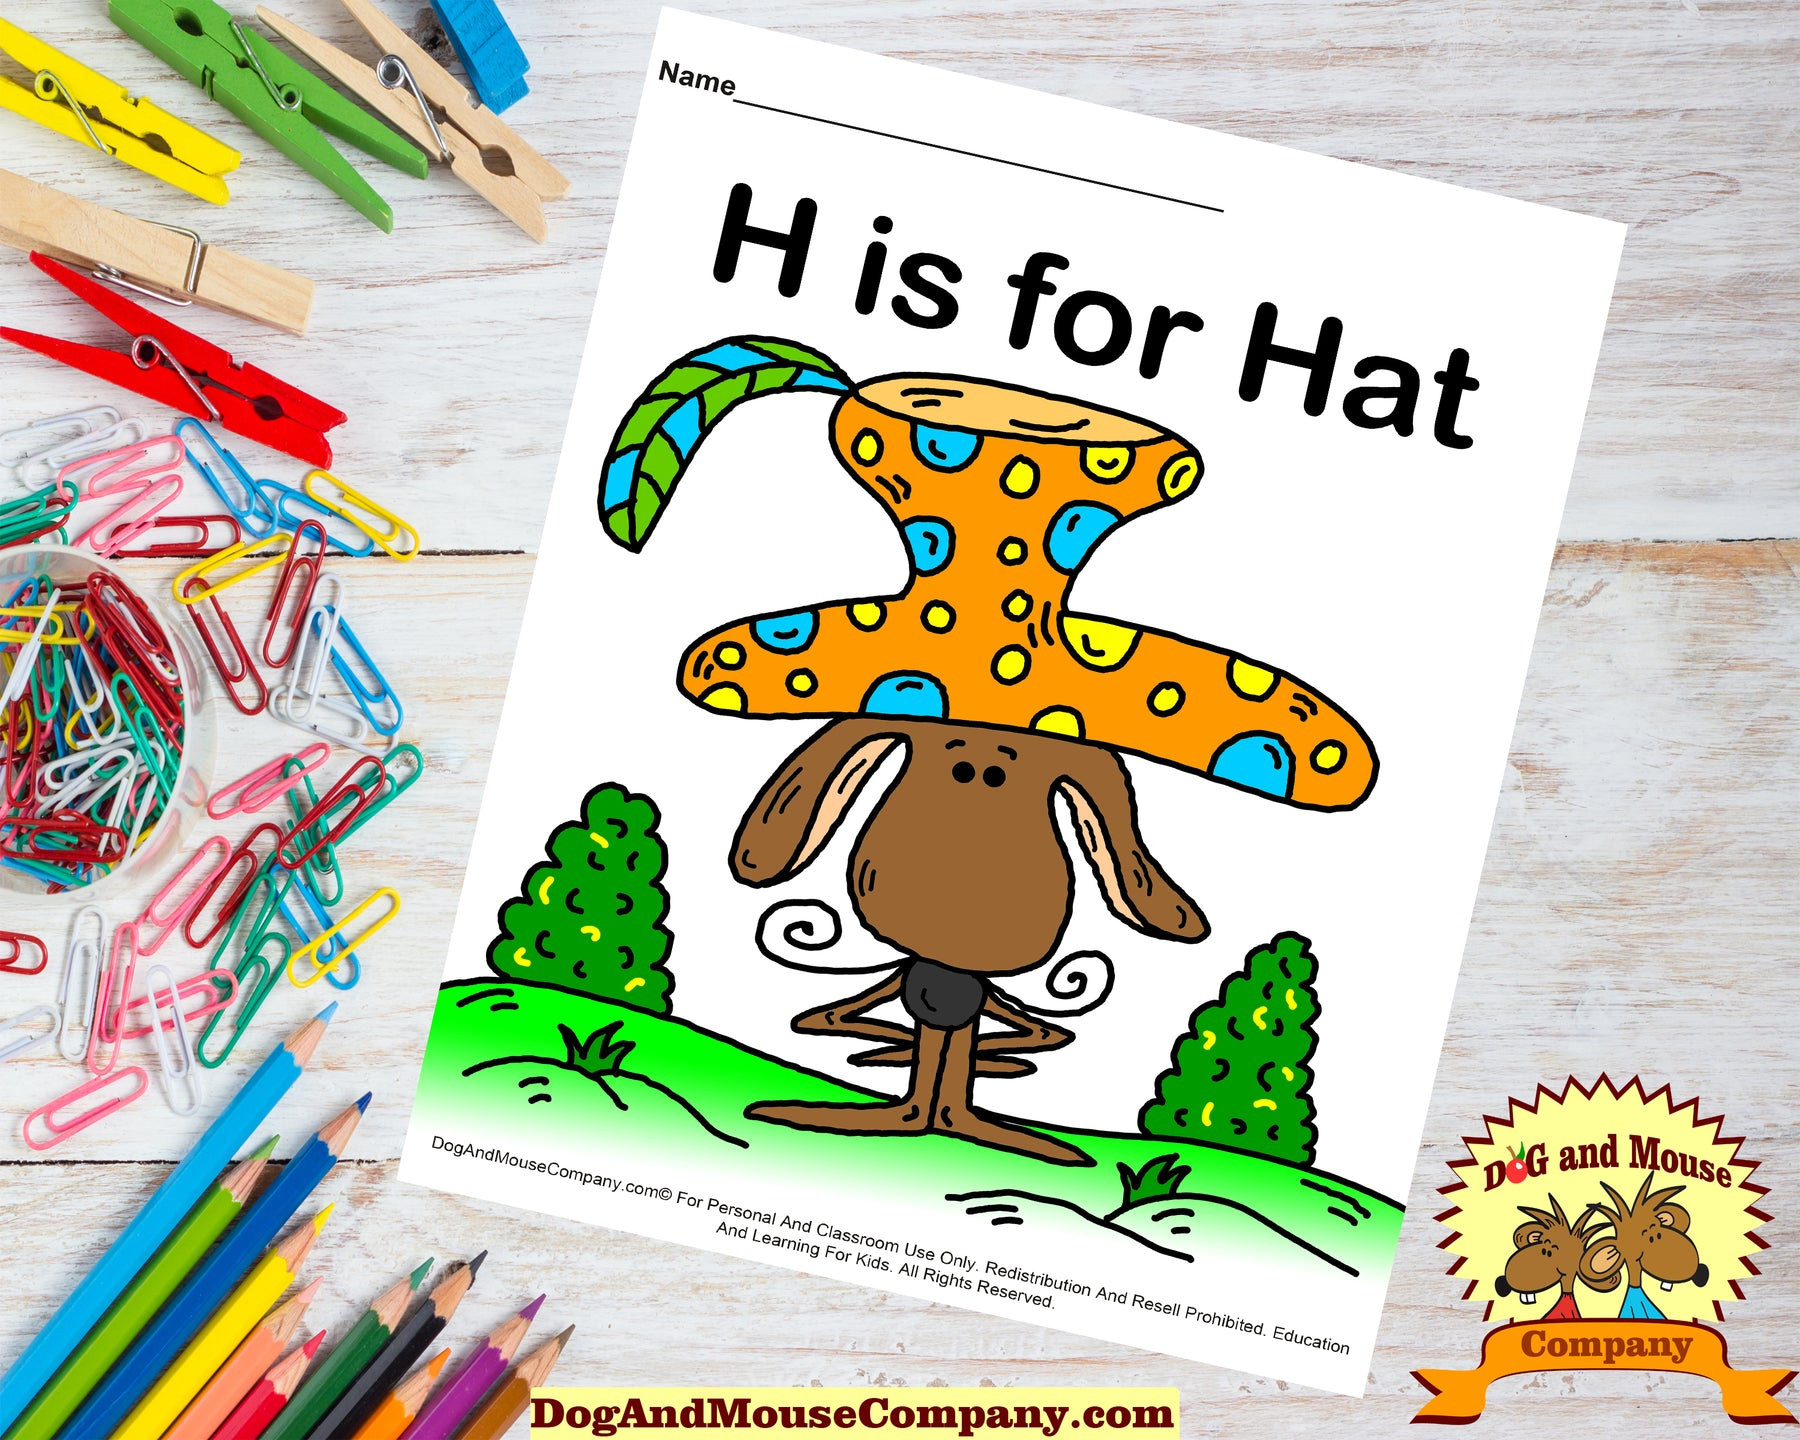 H Is For Hat Colored Template | Learn Your ABC's Worksheet | Printable Digital Download by Dog And Mouse Company